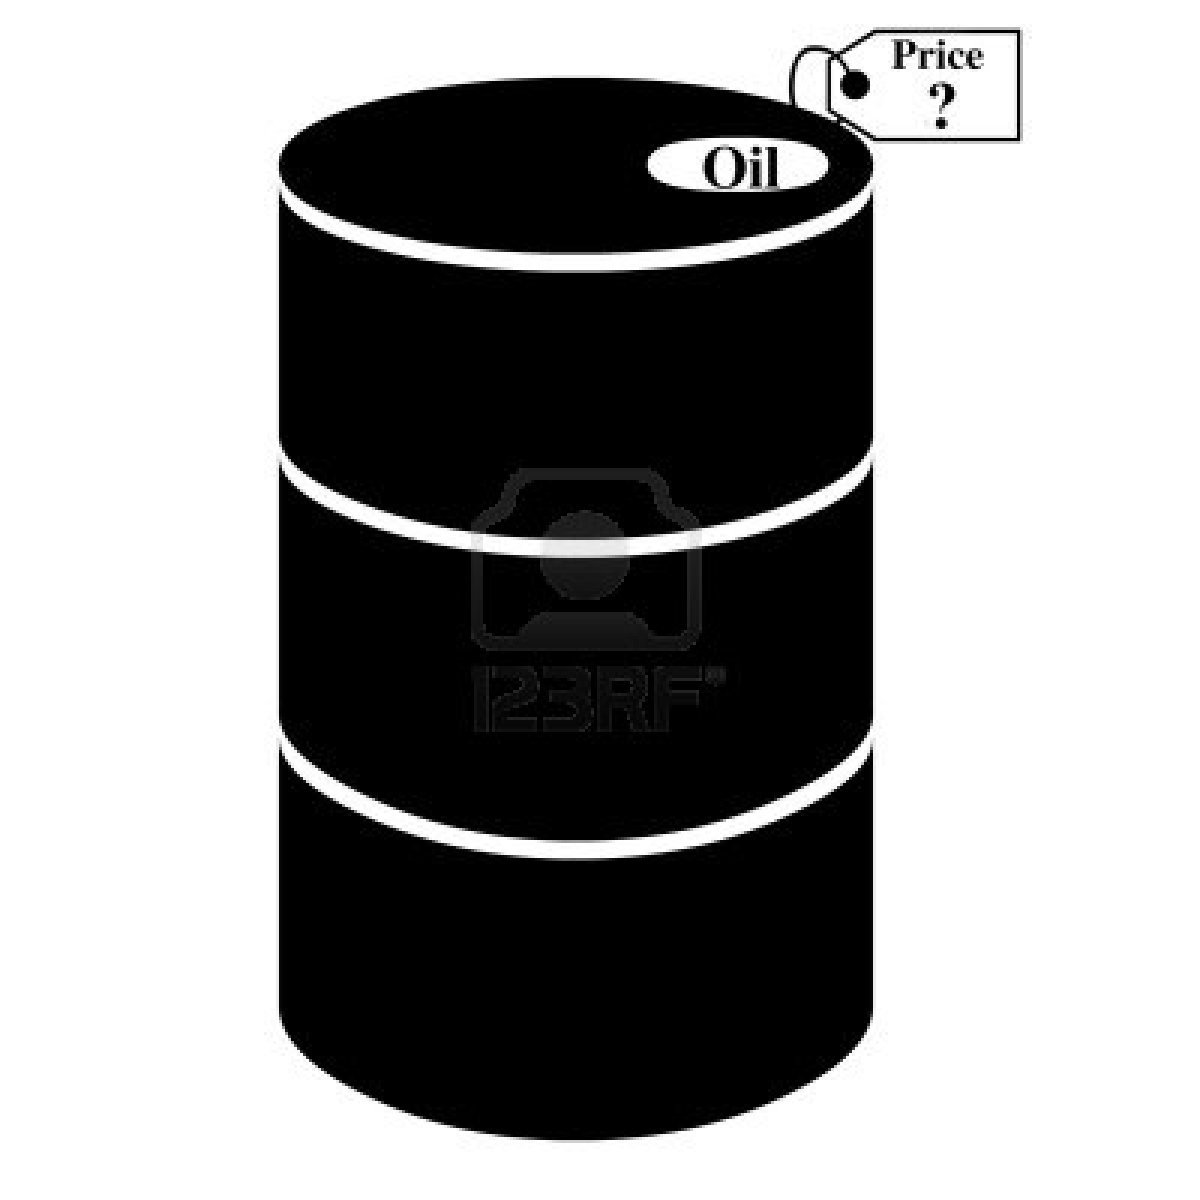 Forex real time oil